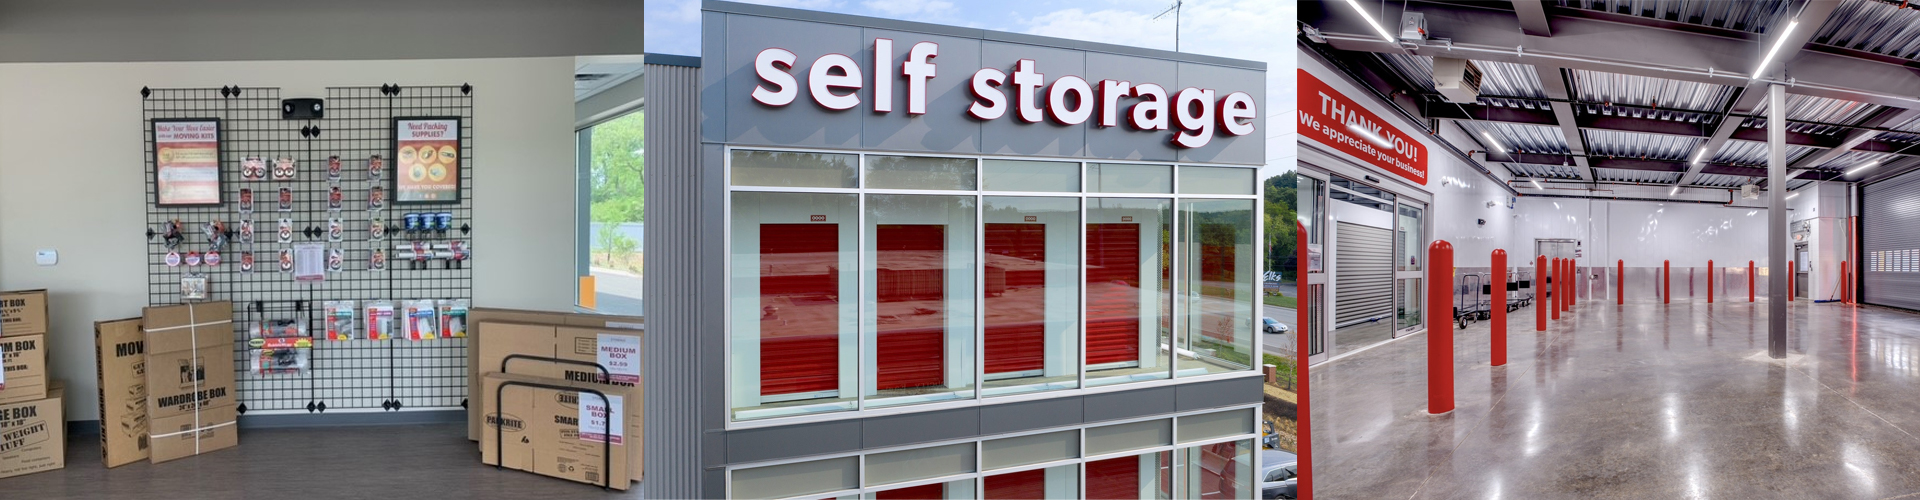 Storage Rental Office and Interior Loading Dock Area